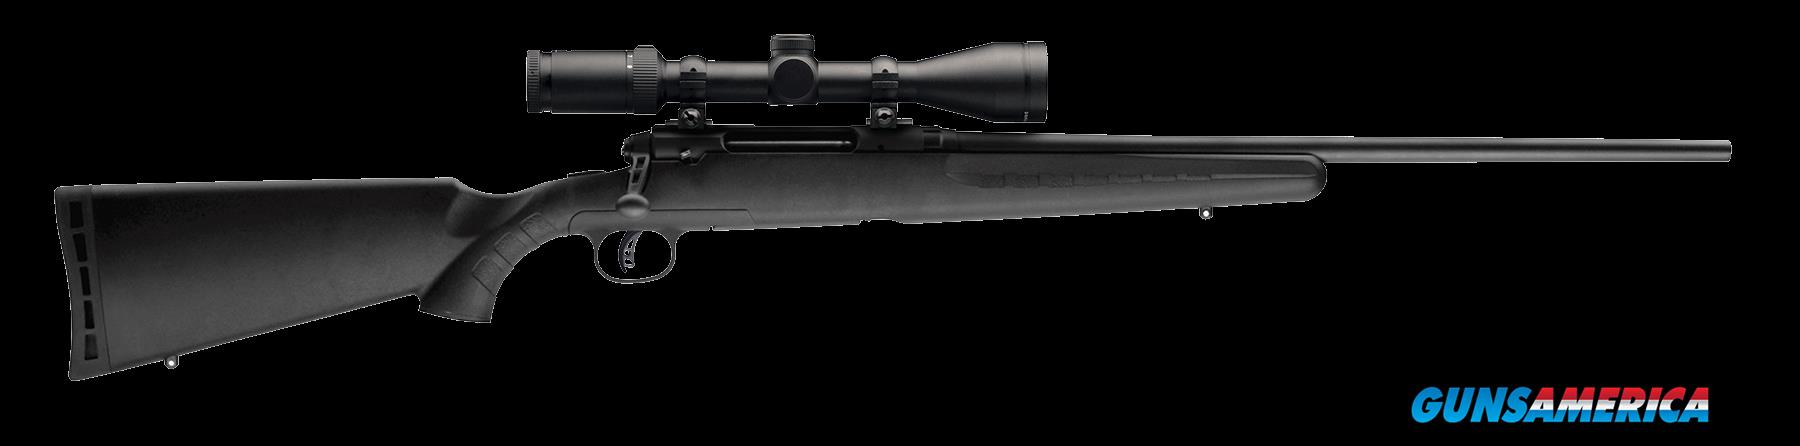 "Savage 22225 Axis II XP with Scope Bolt 308 Winchester 22"" 4+1 Synthetic Black Stk Blued  Guns > Rifles > S Misc Rifles"